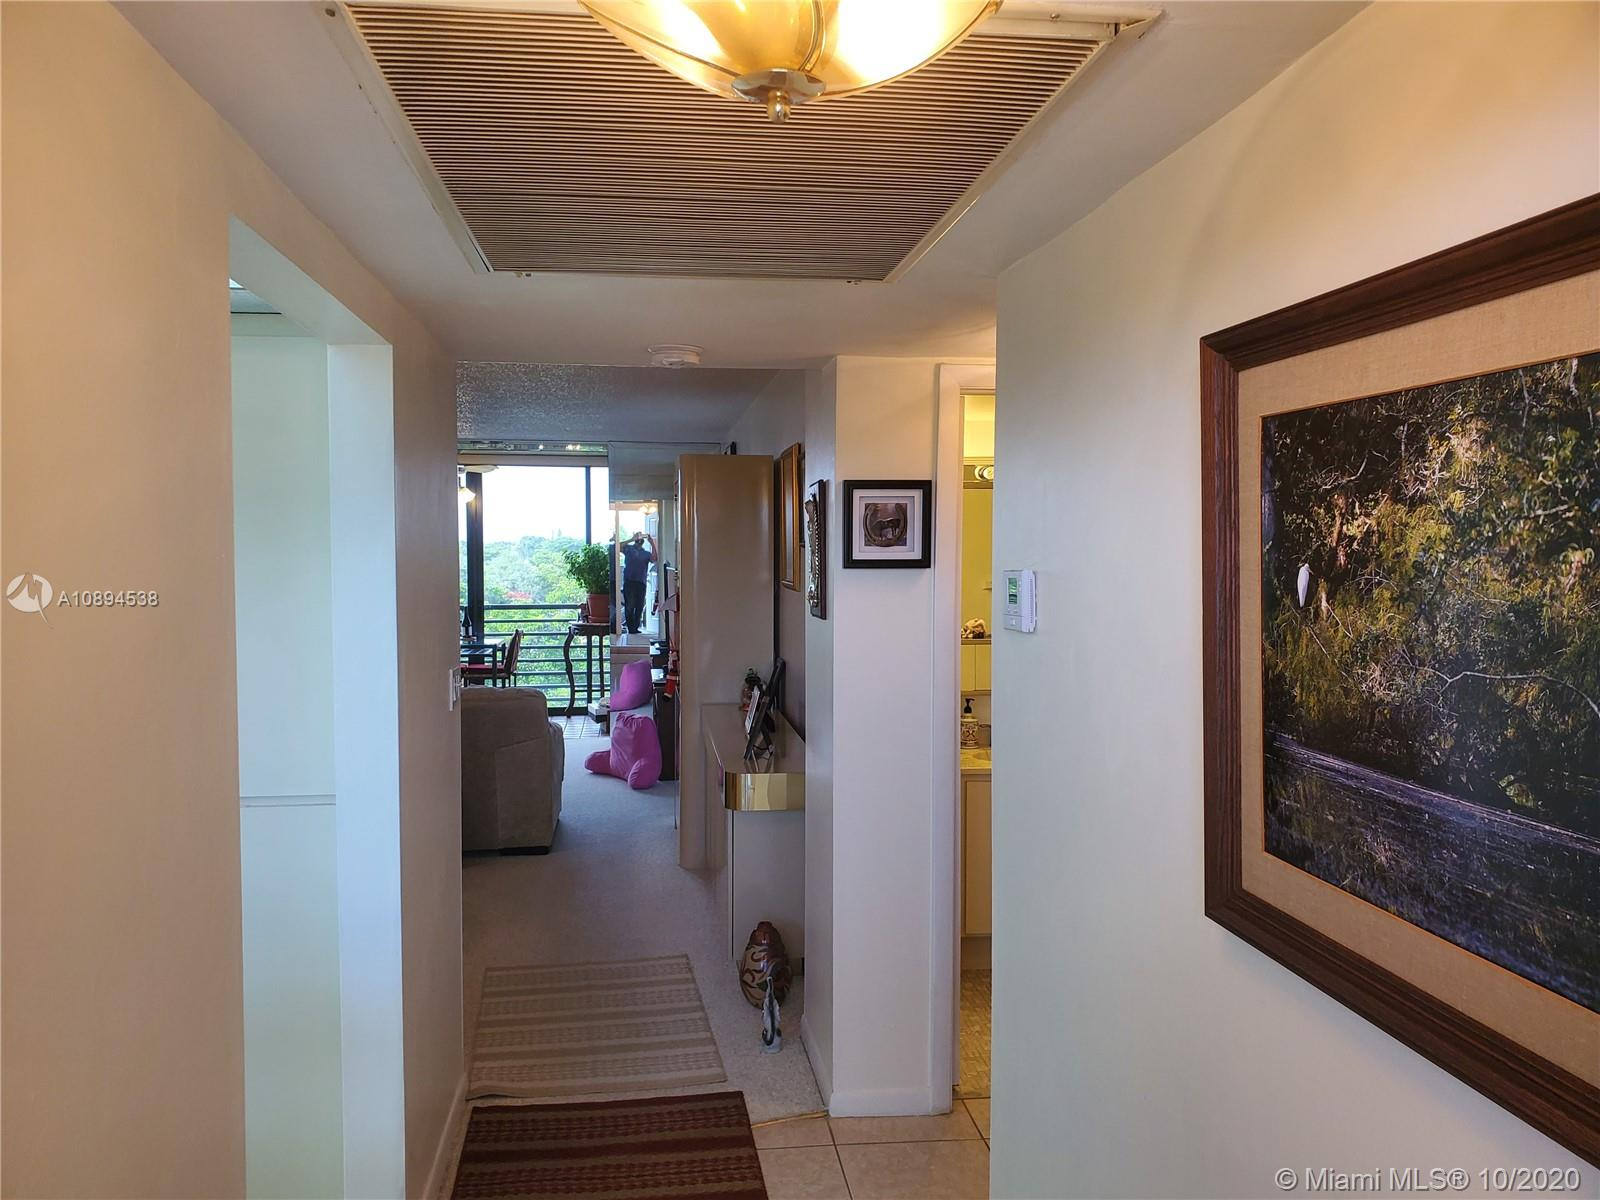 Excellent location on the fifth-floor with lake view 2-bed/2-bath, condo in the great community of Colony Point in Pembroke Pines! Colony Point is centrally located and provides many amenities, pool, tennis, racquetball, sauna, Jacuzzi,  billiard, gym, movie, theater, free shuttle for its residents to travel to the nearby Pembroke Lakes Mall, Publix, Walmart, and restaurants. Washer/dryer in unit, with enclosed balcony under a/c, This condo is a must-see for a permanent or seasonal buyer. No leasing